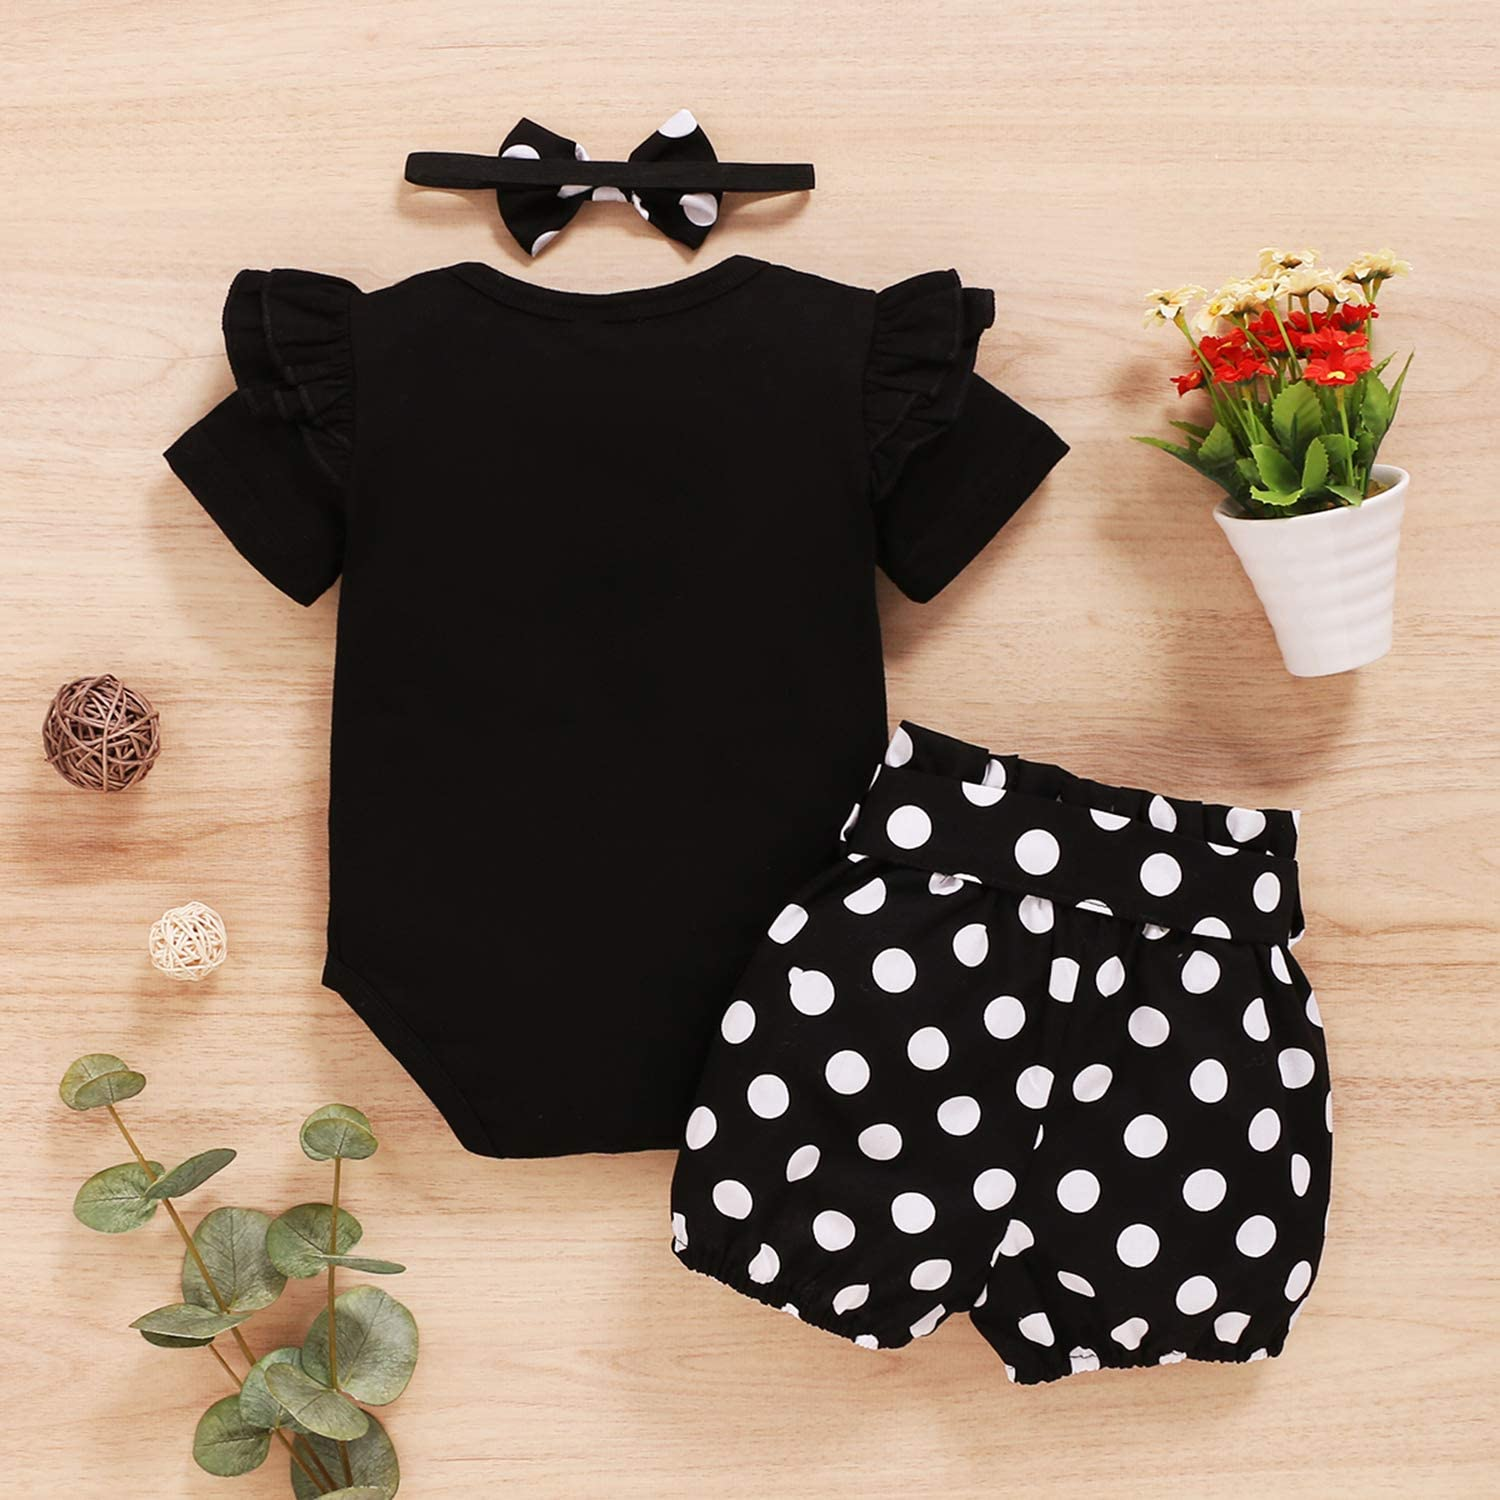 OPAWO Newborn Infant Baby Girls Ruffle Short Sleeve Romper Top Polka Dot Shorts Pants with Headband 3pcs Summer Outfit Clothes Sets for 0-18 Months